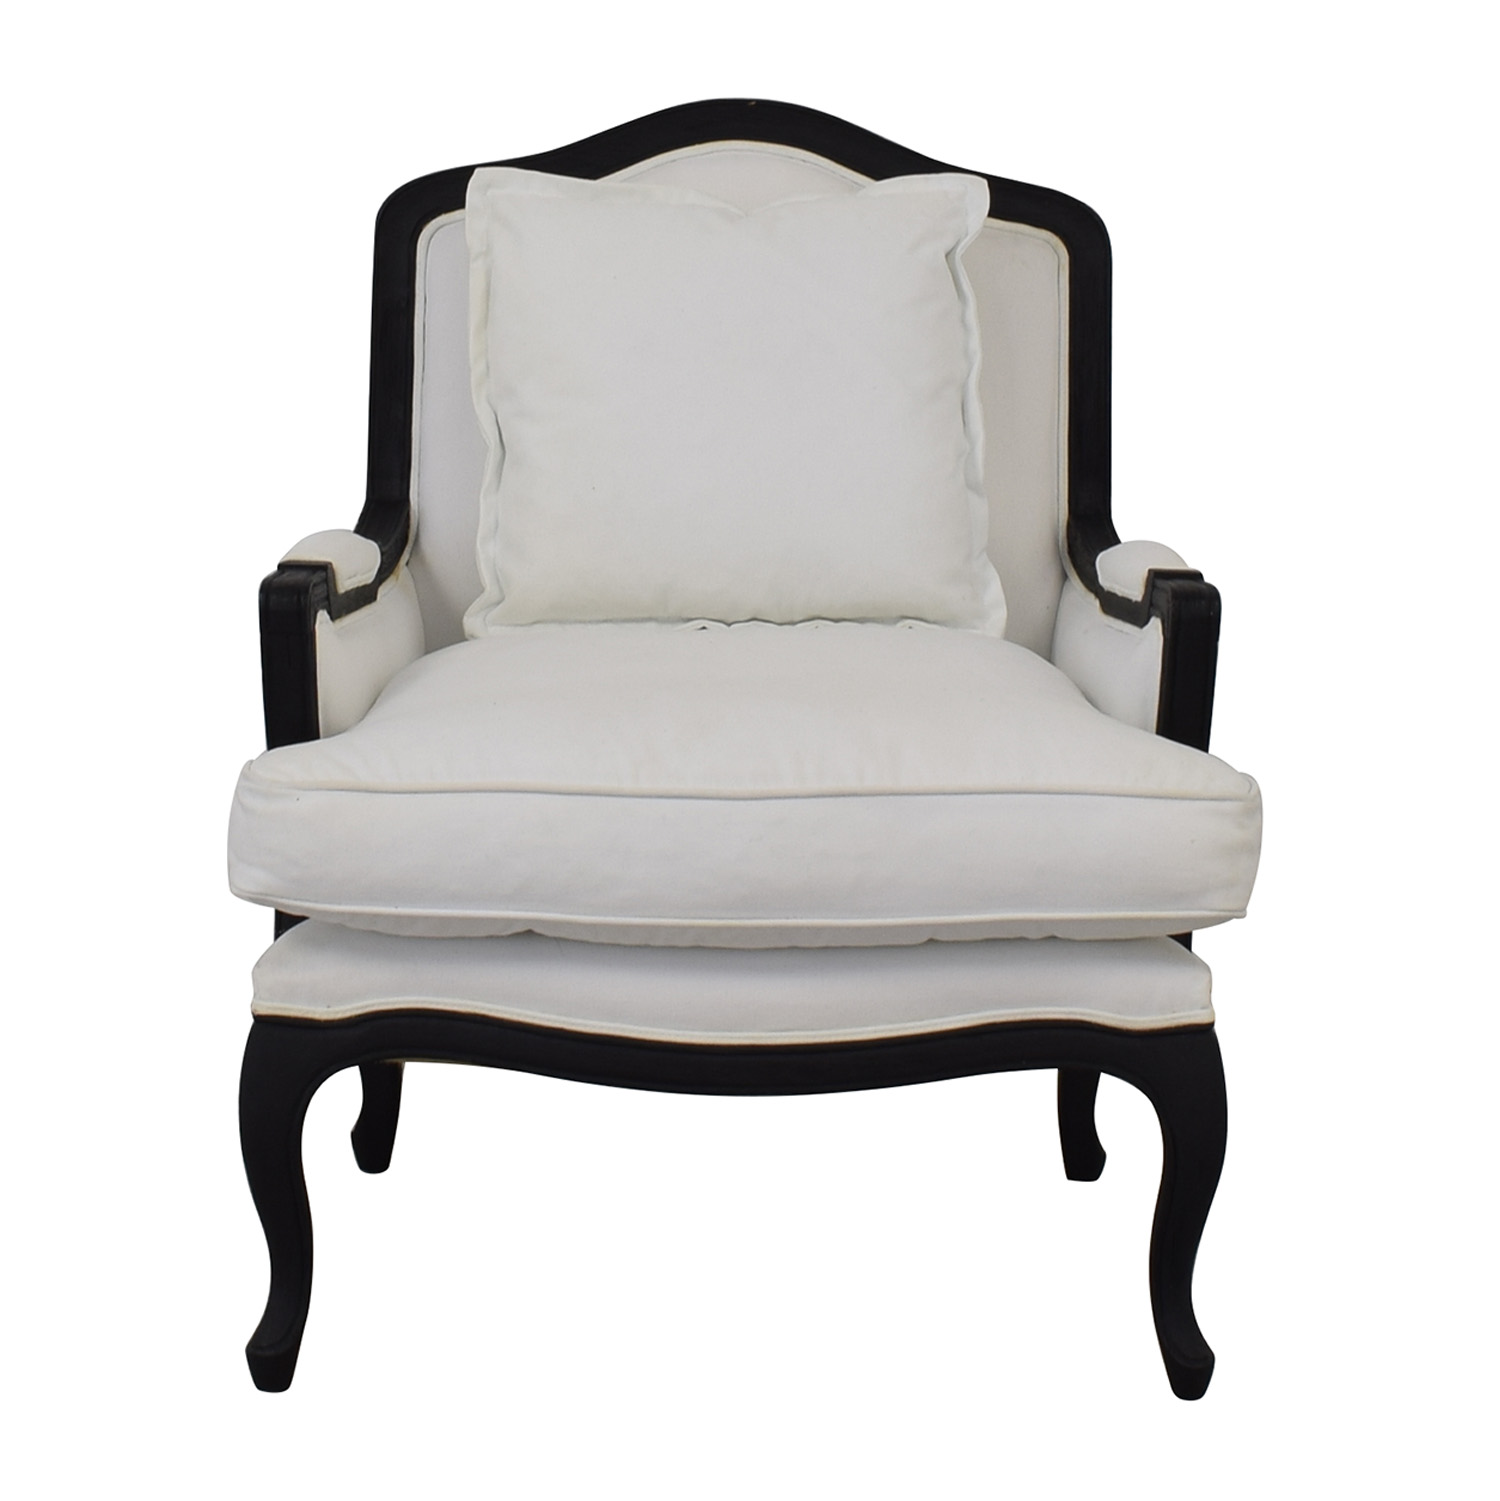 Restoration Hardware Restoration Hardware Marseille Chair